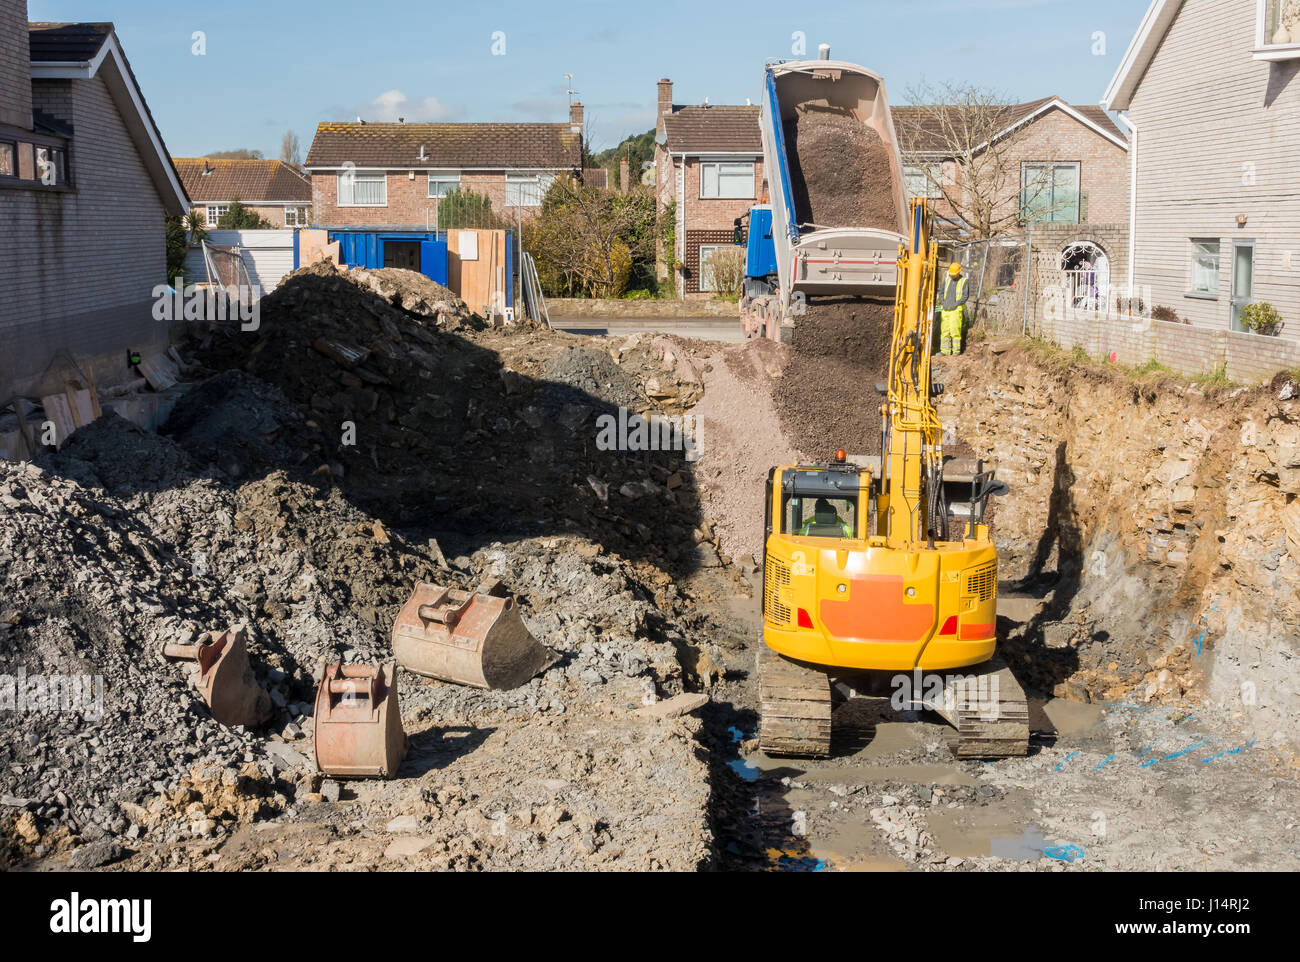 Excavator is digging a house foundation in a residential for Digging foundation for house